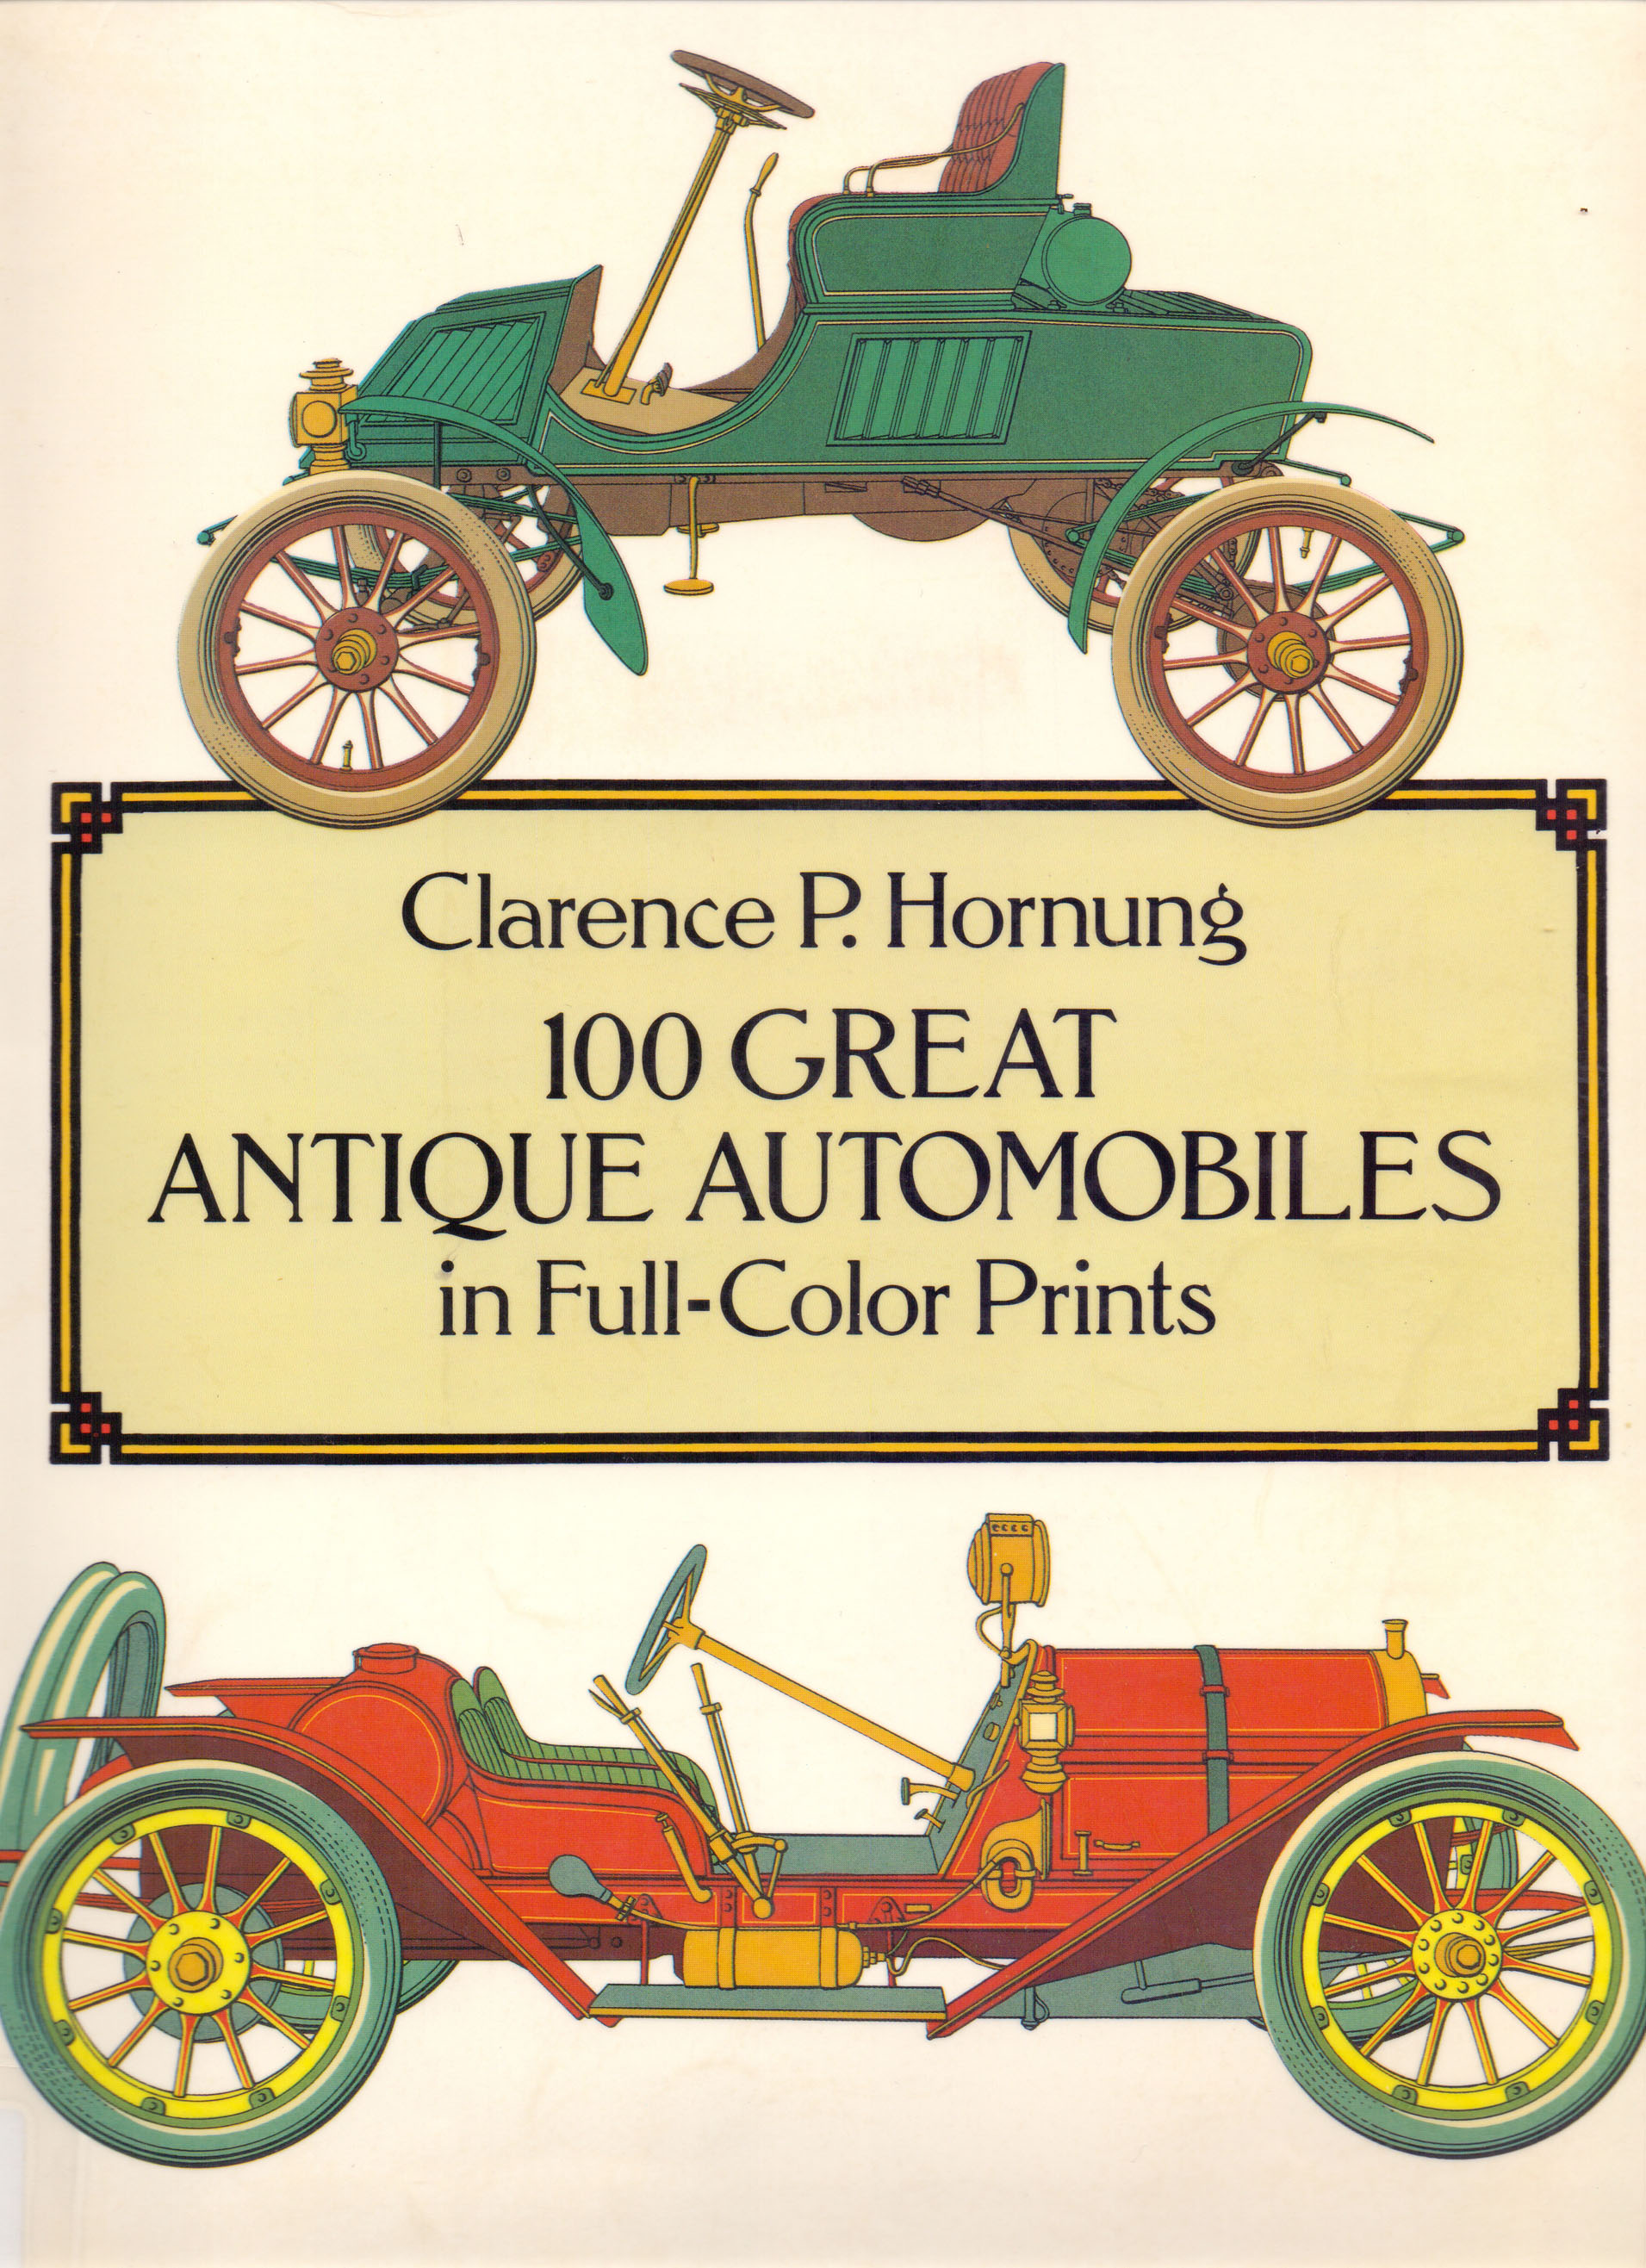 100 Great Antique Automobiles in Full-Color Prints by Clarence P. Hornung